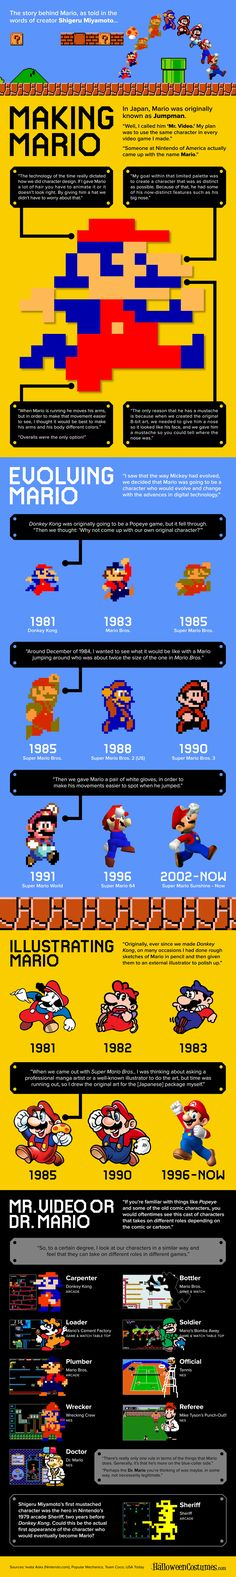 Shigeru Miyamoto Spills the Beans on Mario in This Video and Infographic